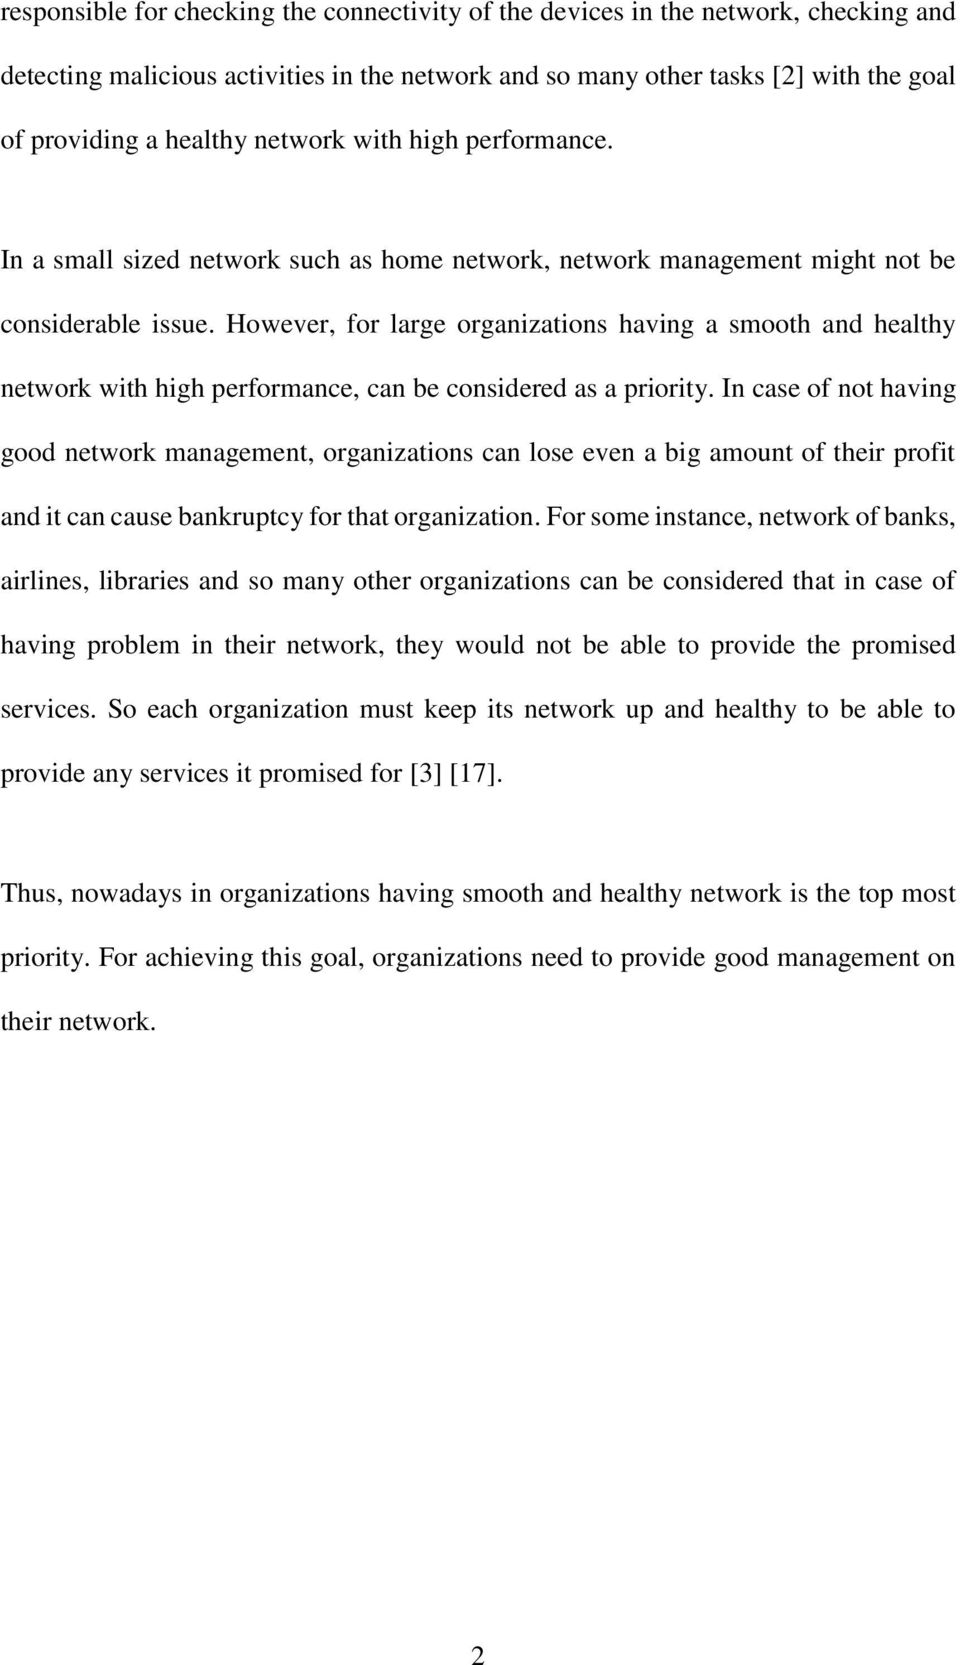 network monitoring system thesis For network management, and is the focus of our work presented in this thesis in  the mainstream network monitoring system, operational data are collected.